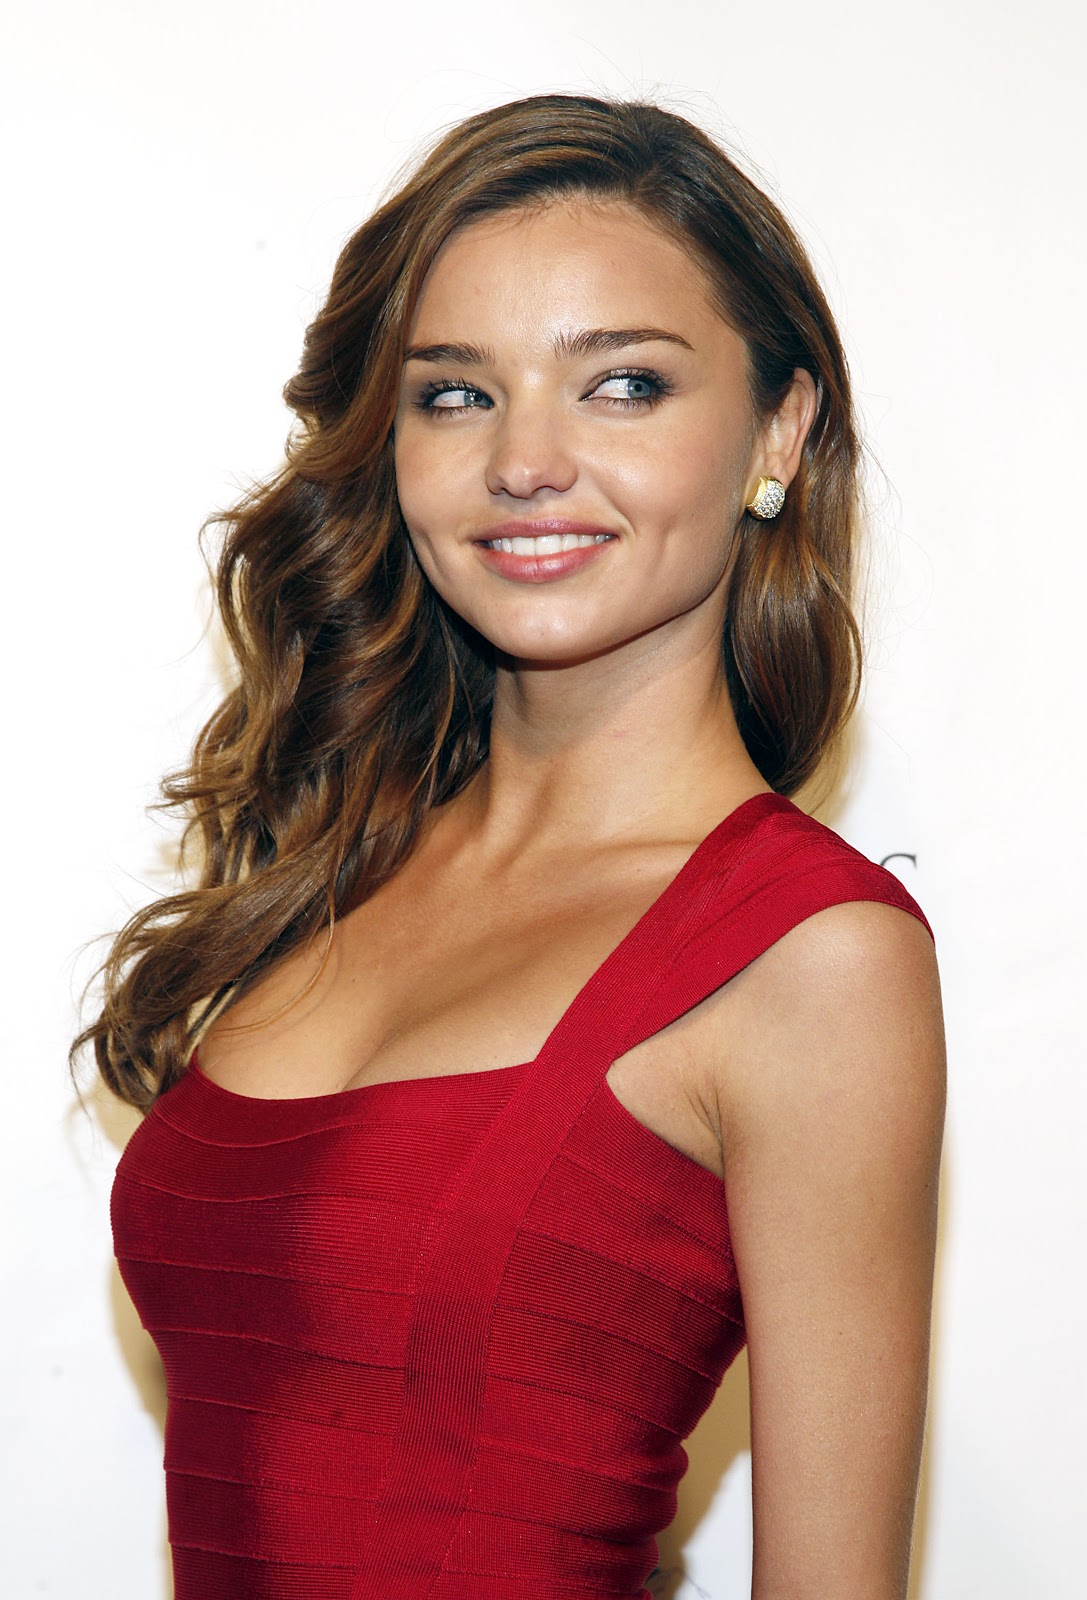 Pretty Wallpapers Rose Quotes Miranda Kerr